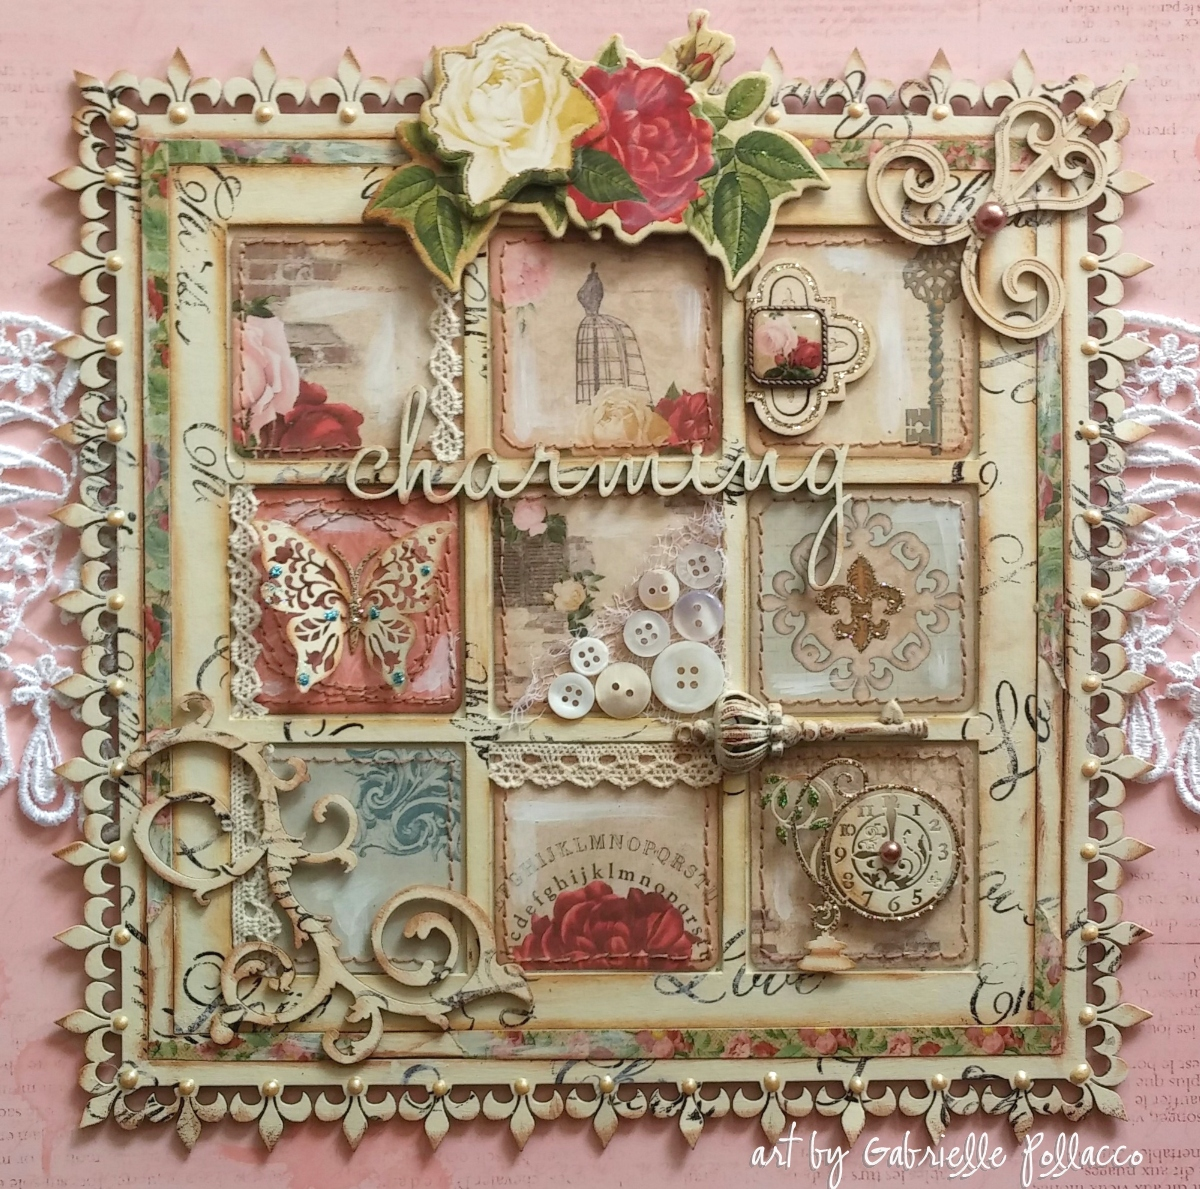 Merveilleux Wall Art By Gabrielle Pollacco Using Bo Bunnyu0027s Juliet Collection And Mixed  Media Products